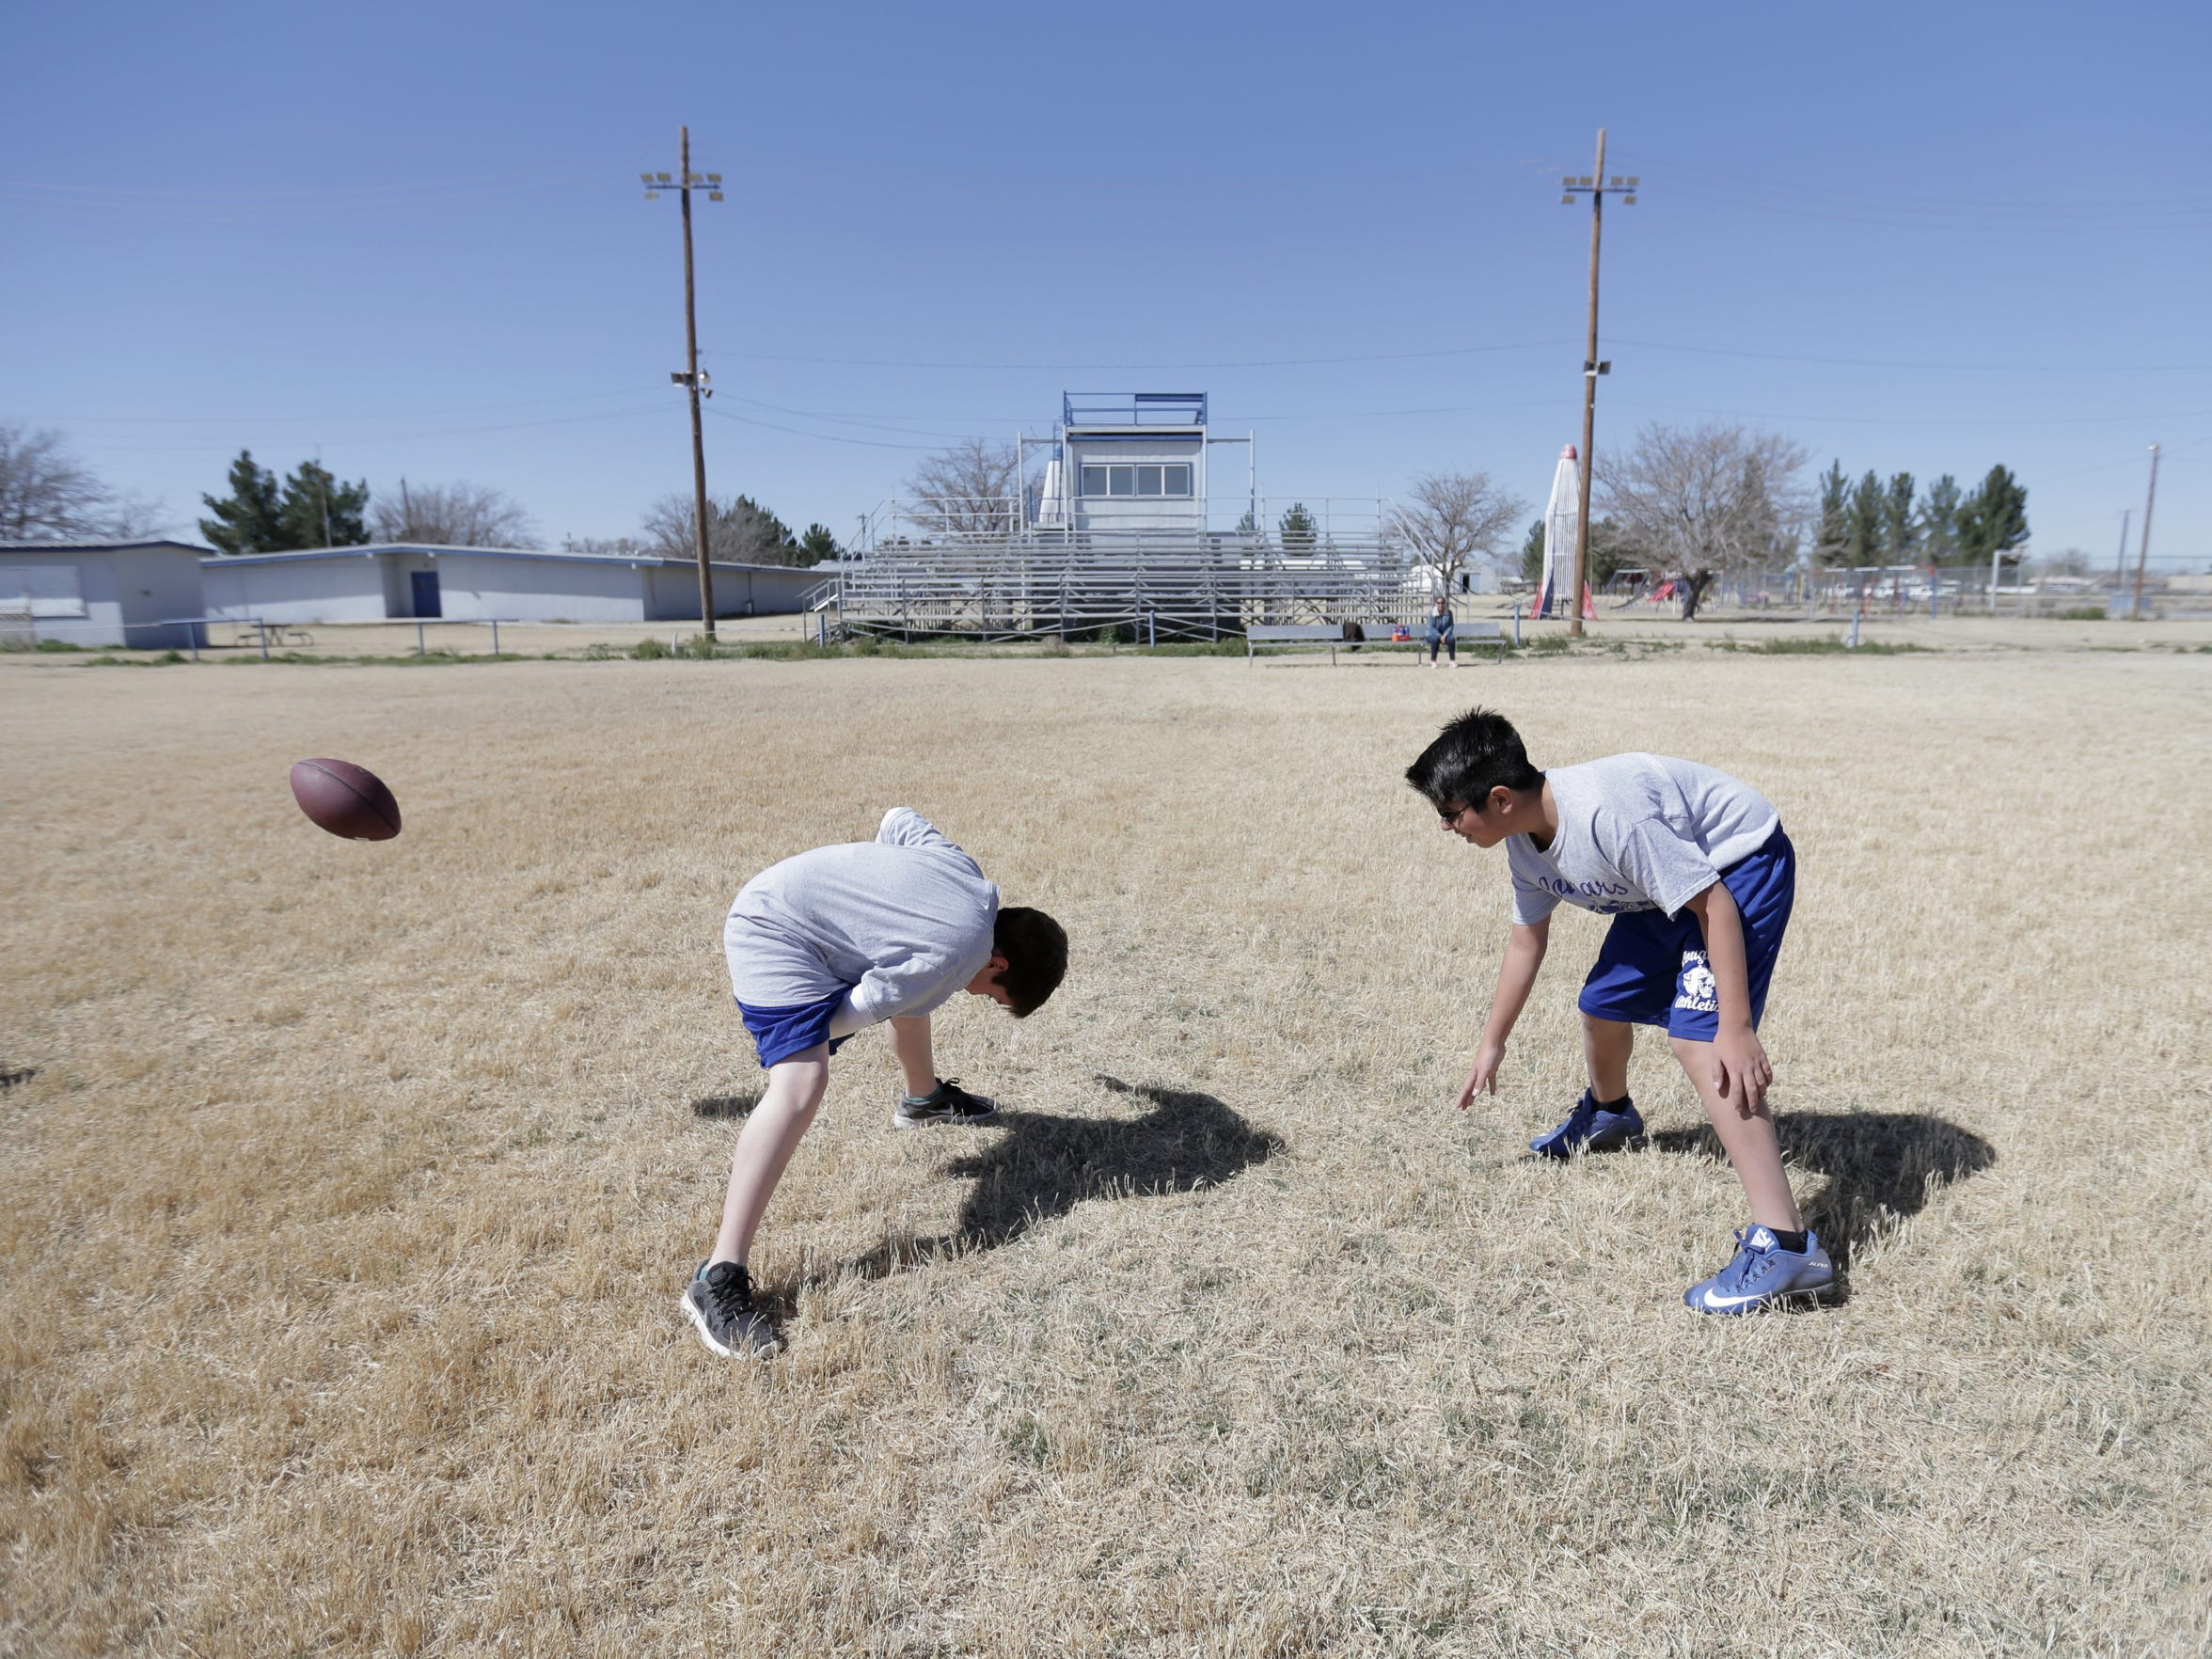 Kids play football during PE at Dell City School. Dell City Superintendent Fabian J. Gomez said there was once an 11-man football team at the school but they now play six-man football. Last year the team couldn't even field a six-man team.